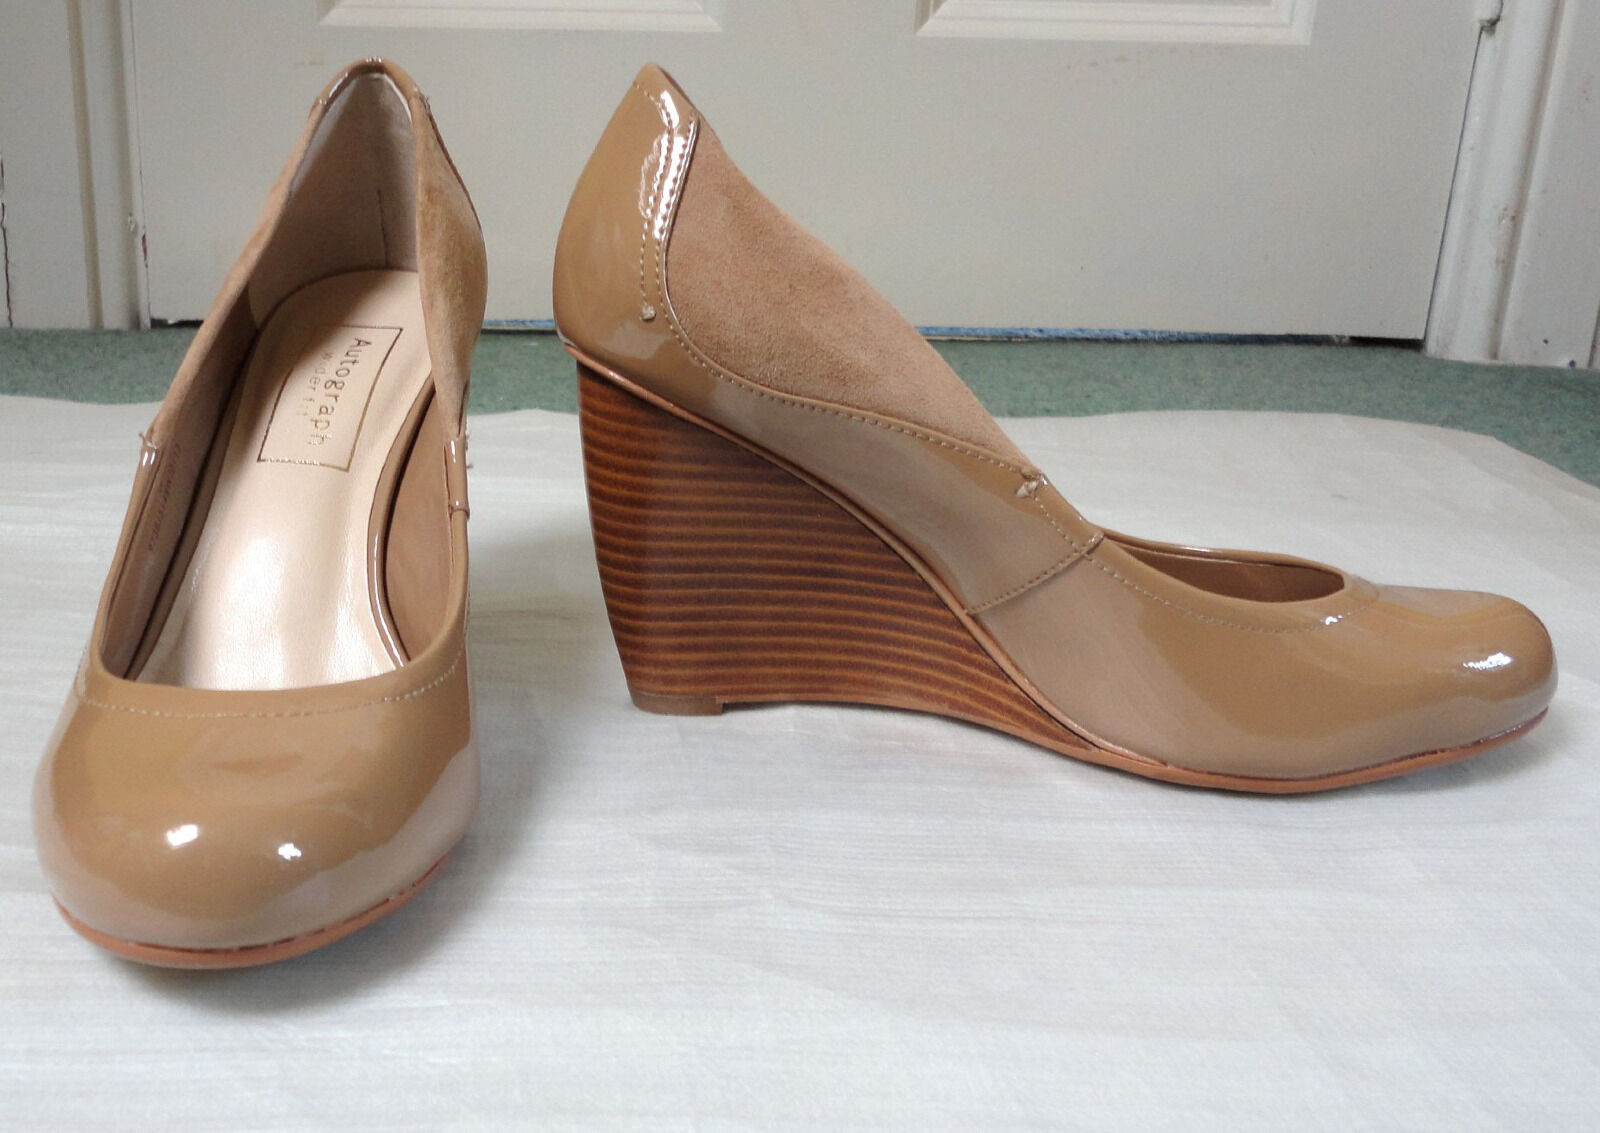 Autograph Leather Wide Fit Wedges with Insolia, Carmel Colour, SZ 4.5, Was 49.50